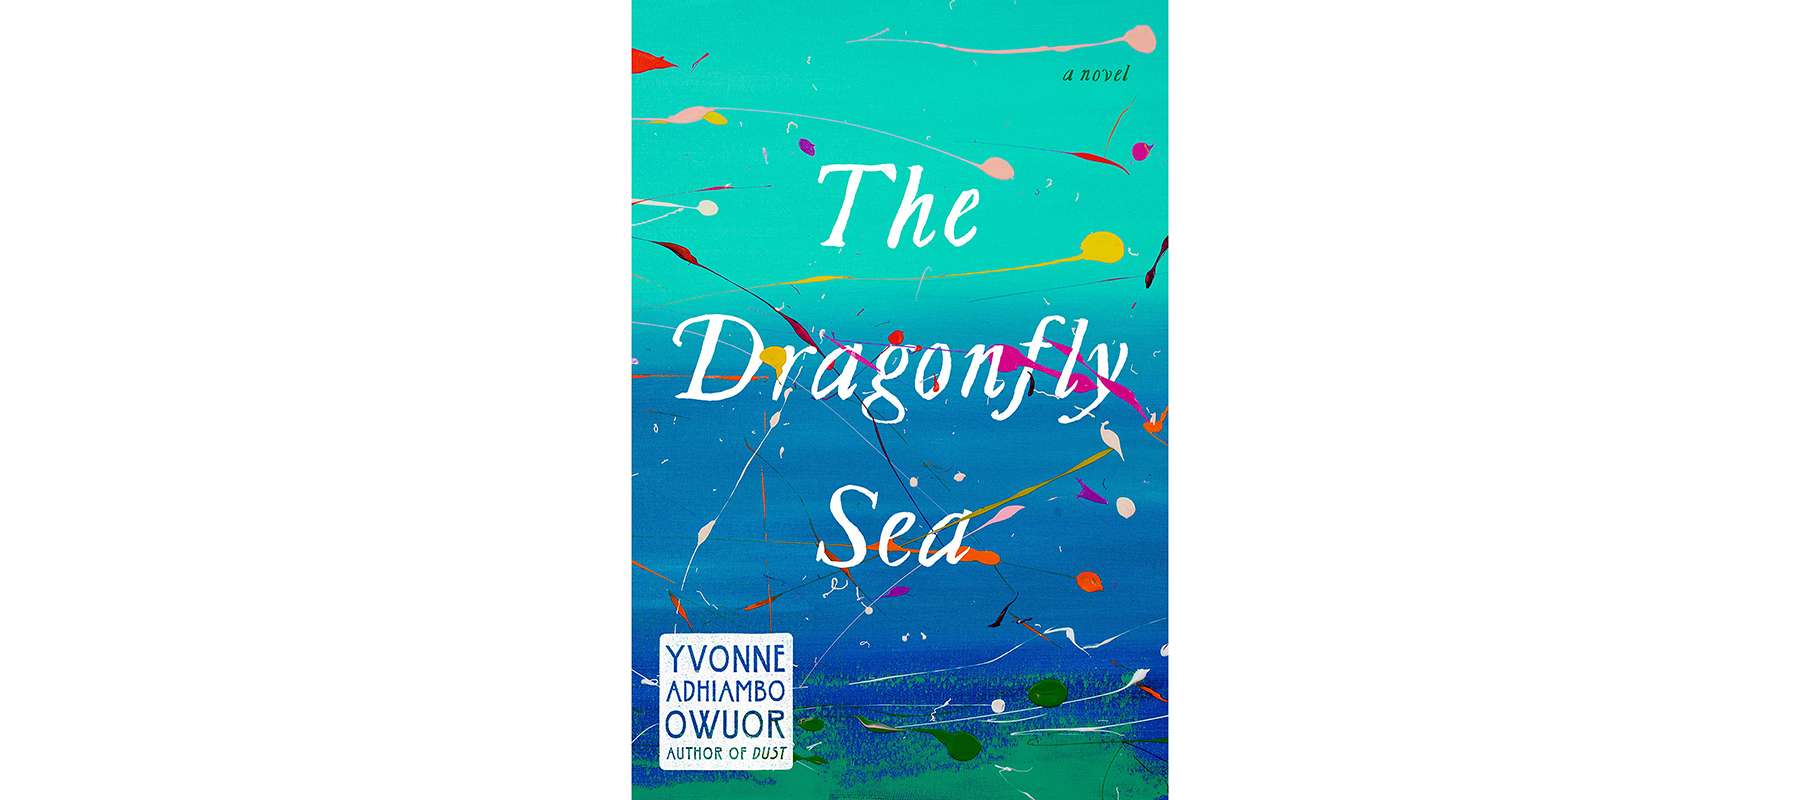 Cover of The Dragonfly Sea, by Yvonne Adhiambo Owuor